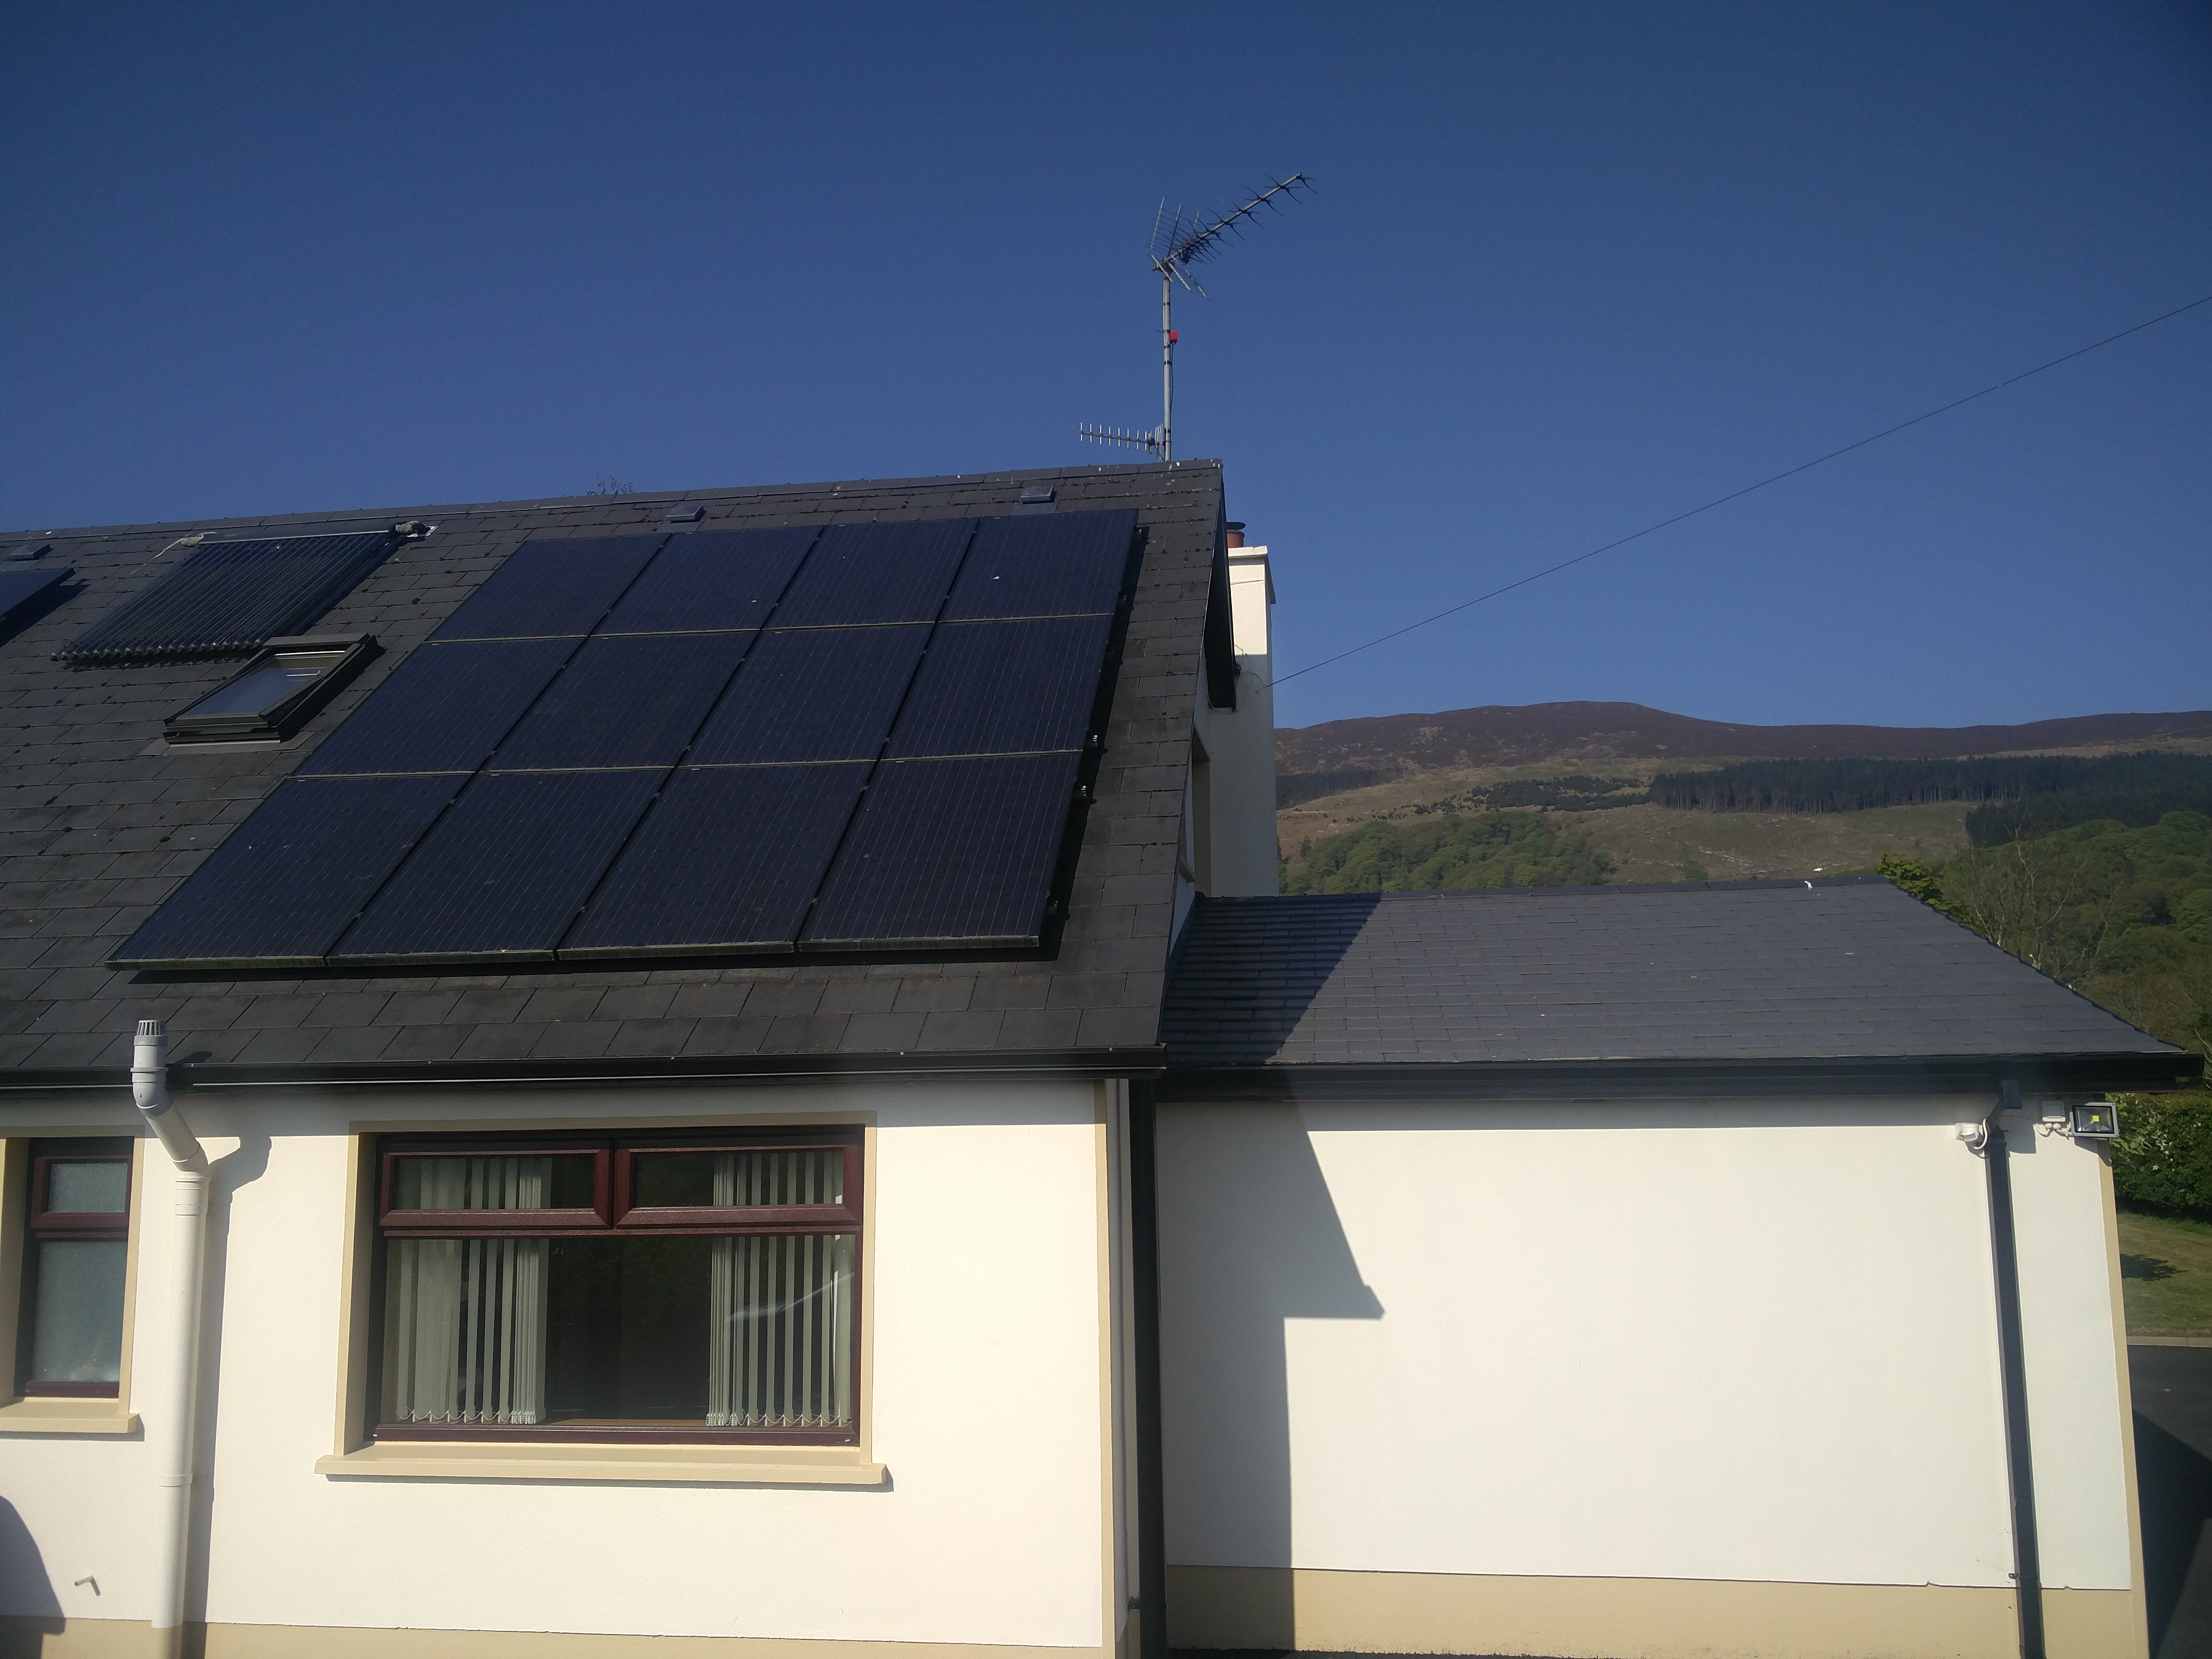 New grants available for Solar Electricity and Battery Storage